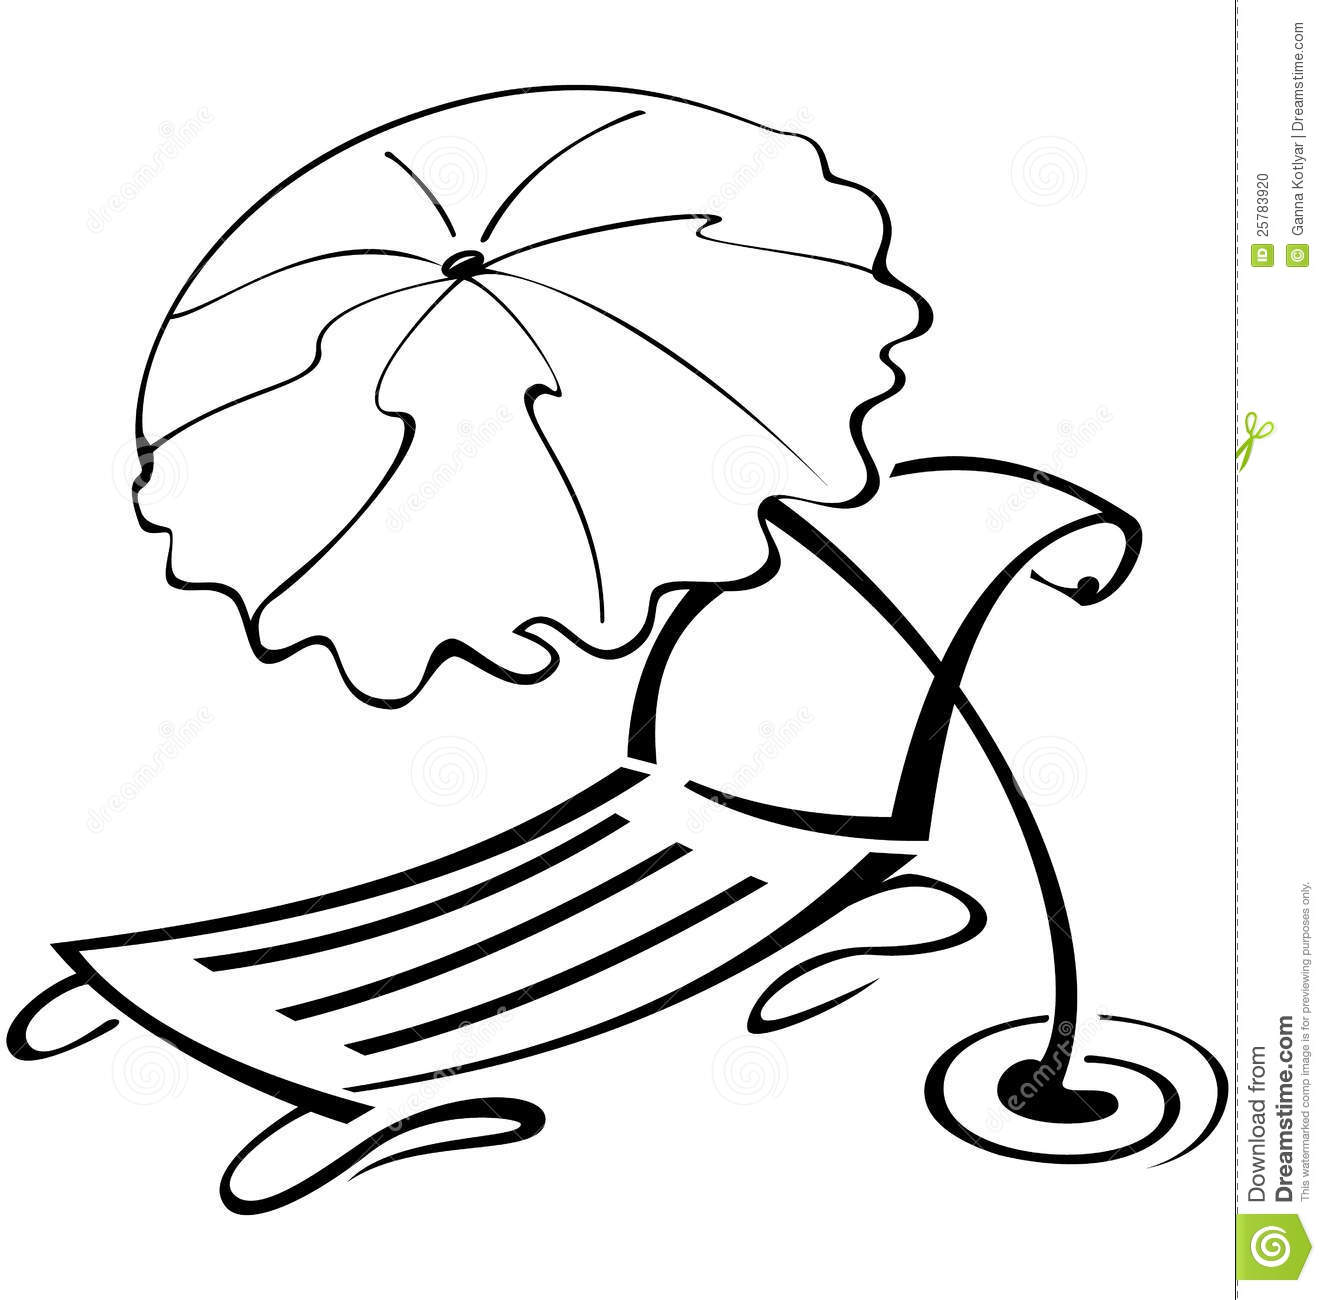 Free beach umbrella black and white clipart jpg. Download best